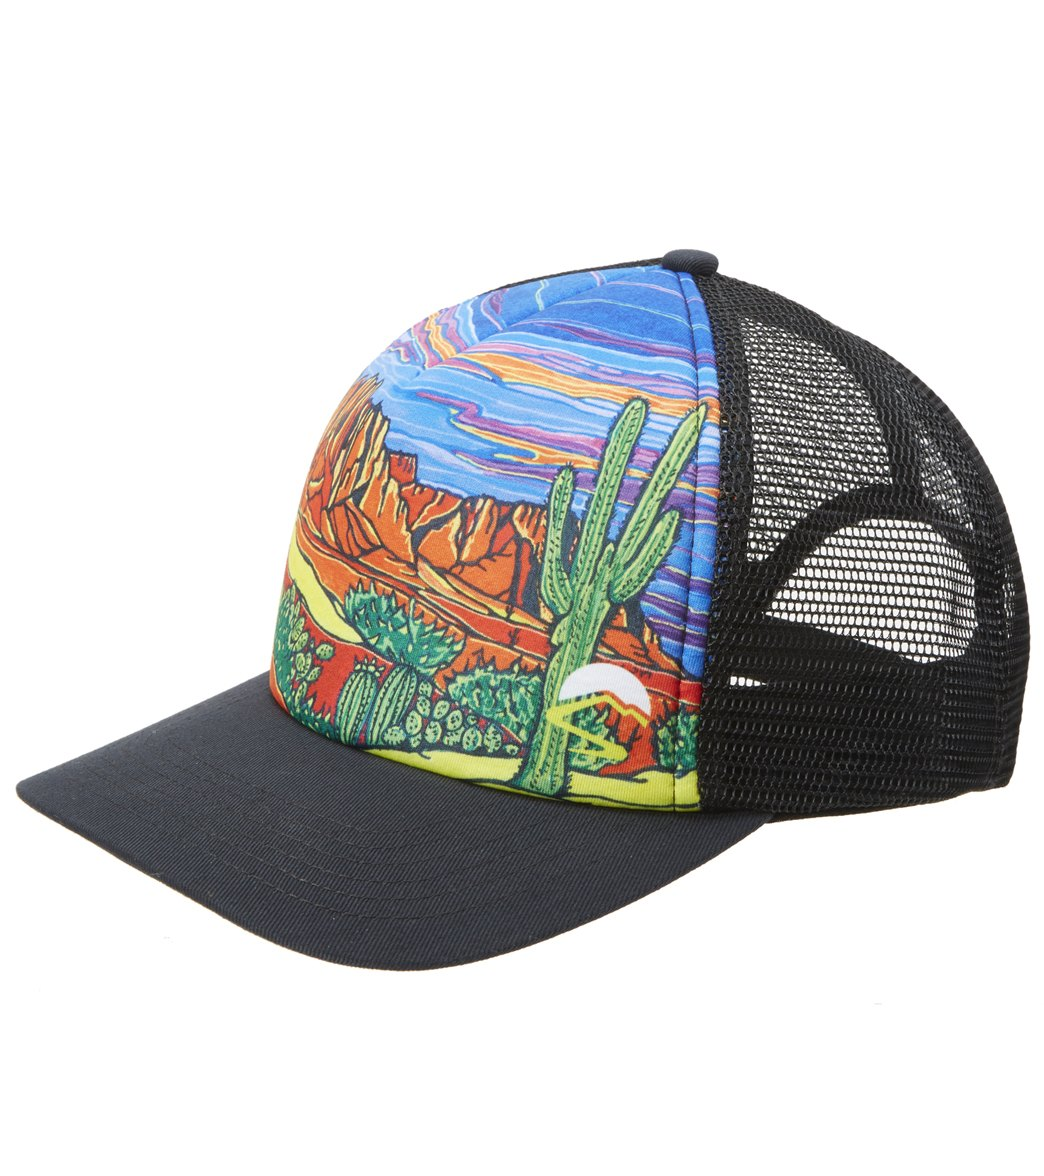 114ab01894d34 Sunday Afternoons Northwest Trucker Cap at SwimOutlet.com